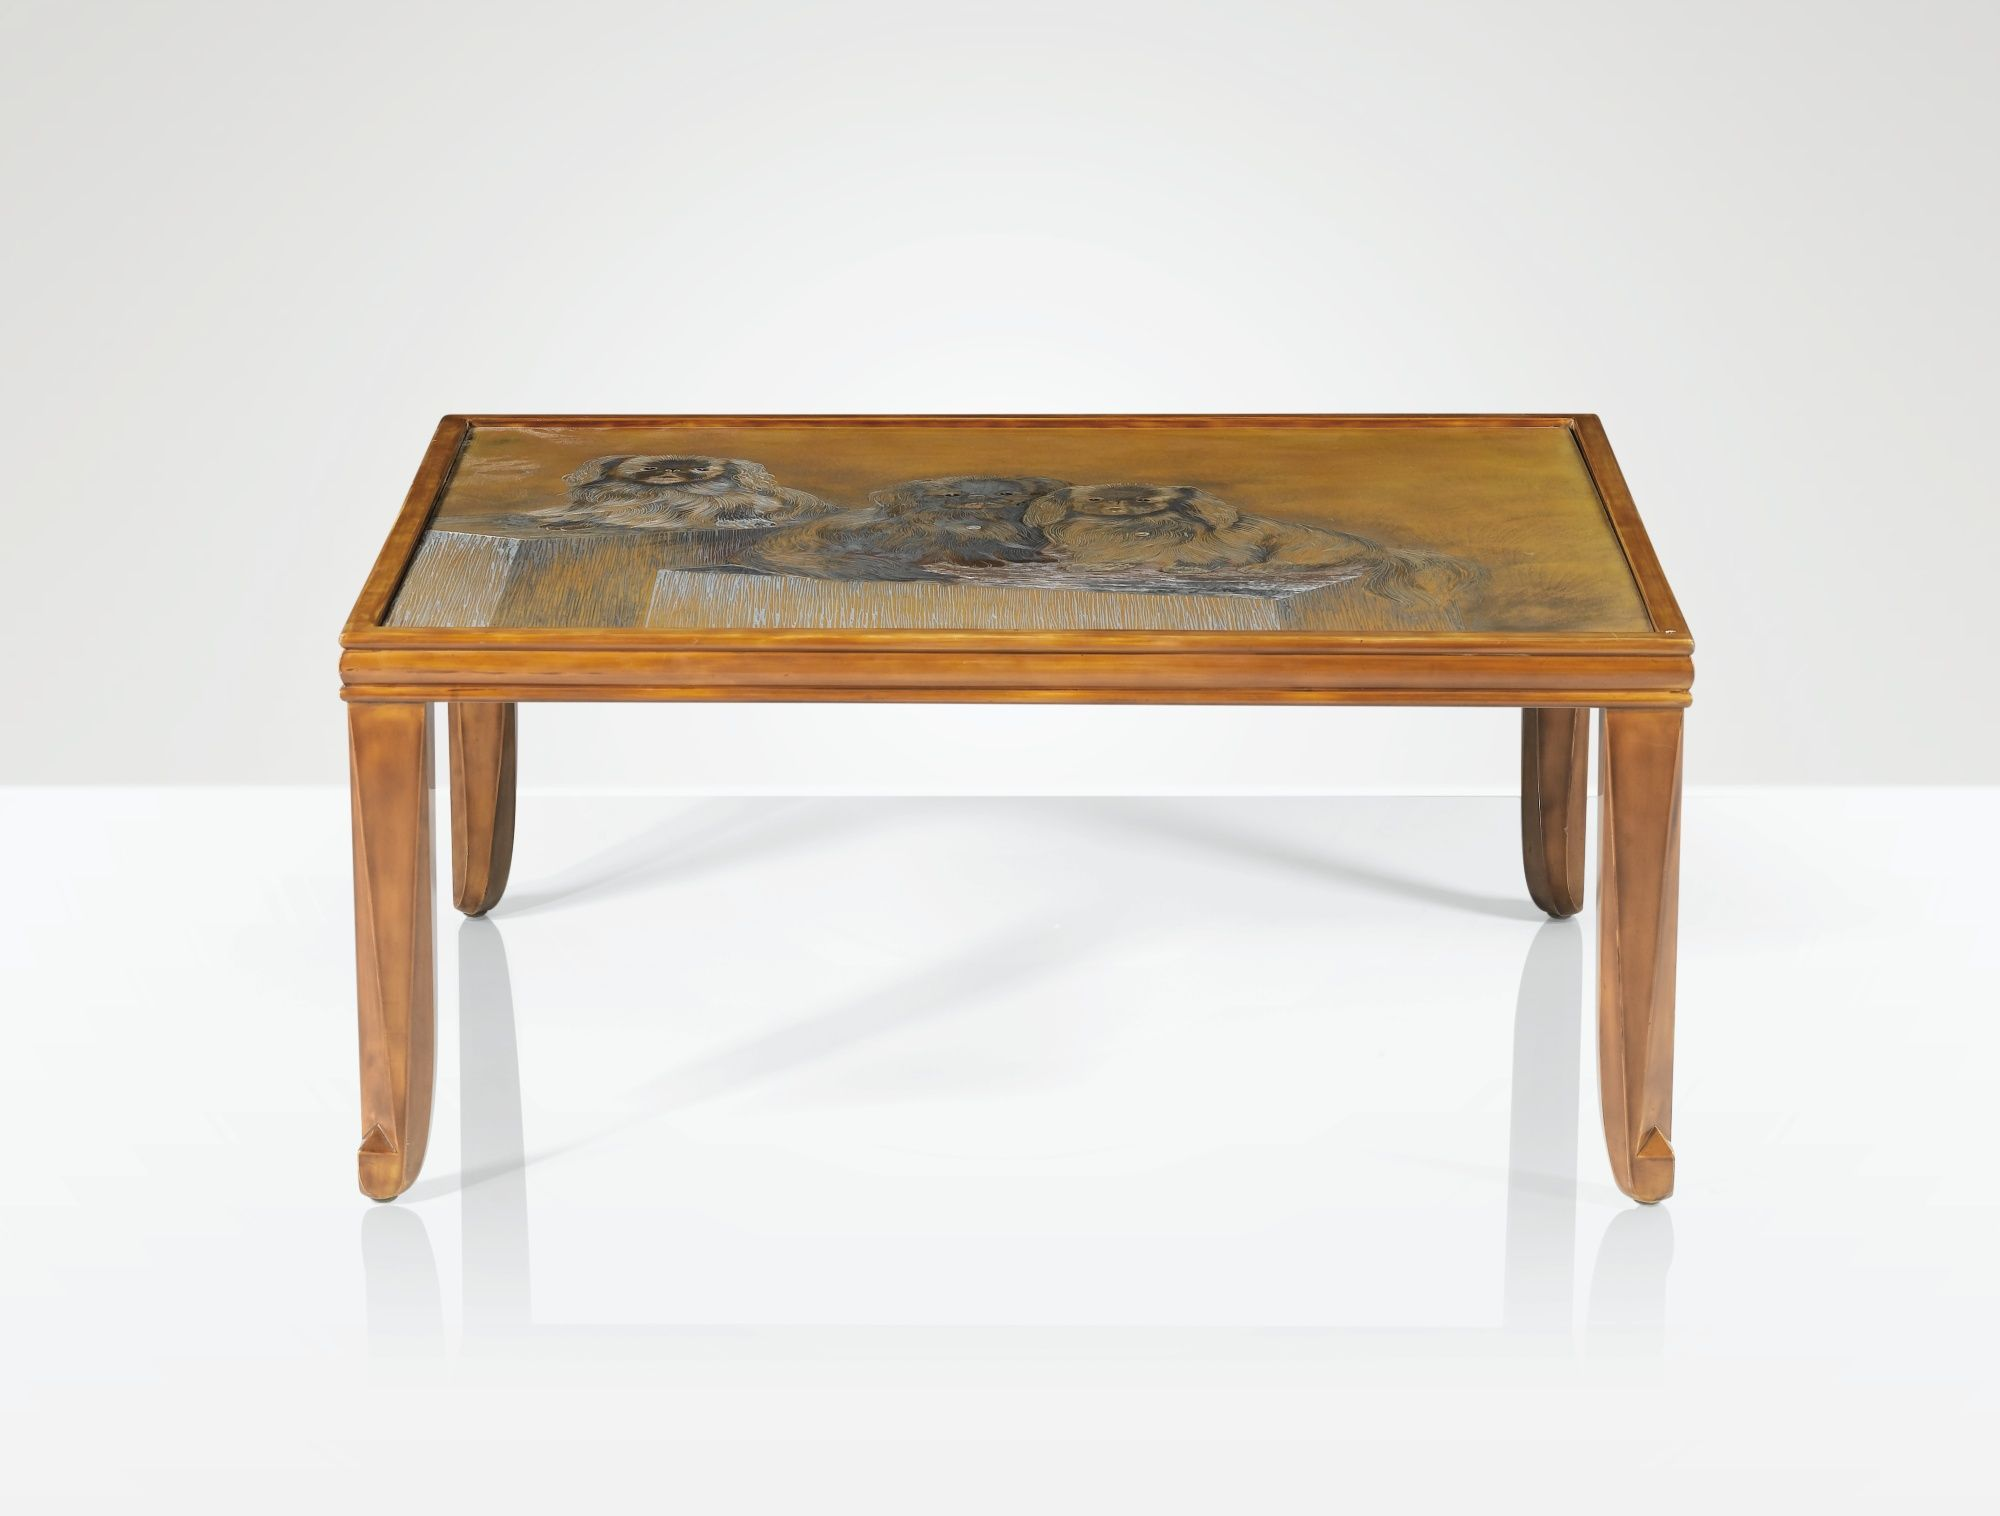 Jean Dunand 1877 1942 Table Basse Vers 1928 A Polychrome Lacquer Occasional Table By Jean Dunand Circa 1928 Si Art Deco Furniture Sheet Metal Crafts Table